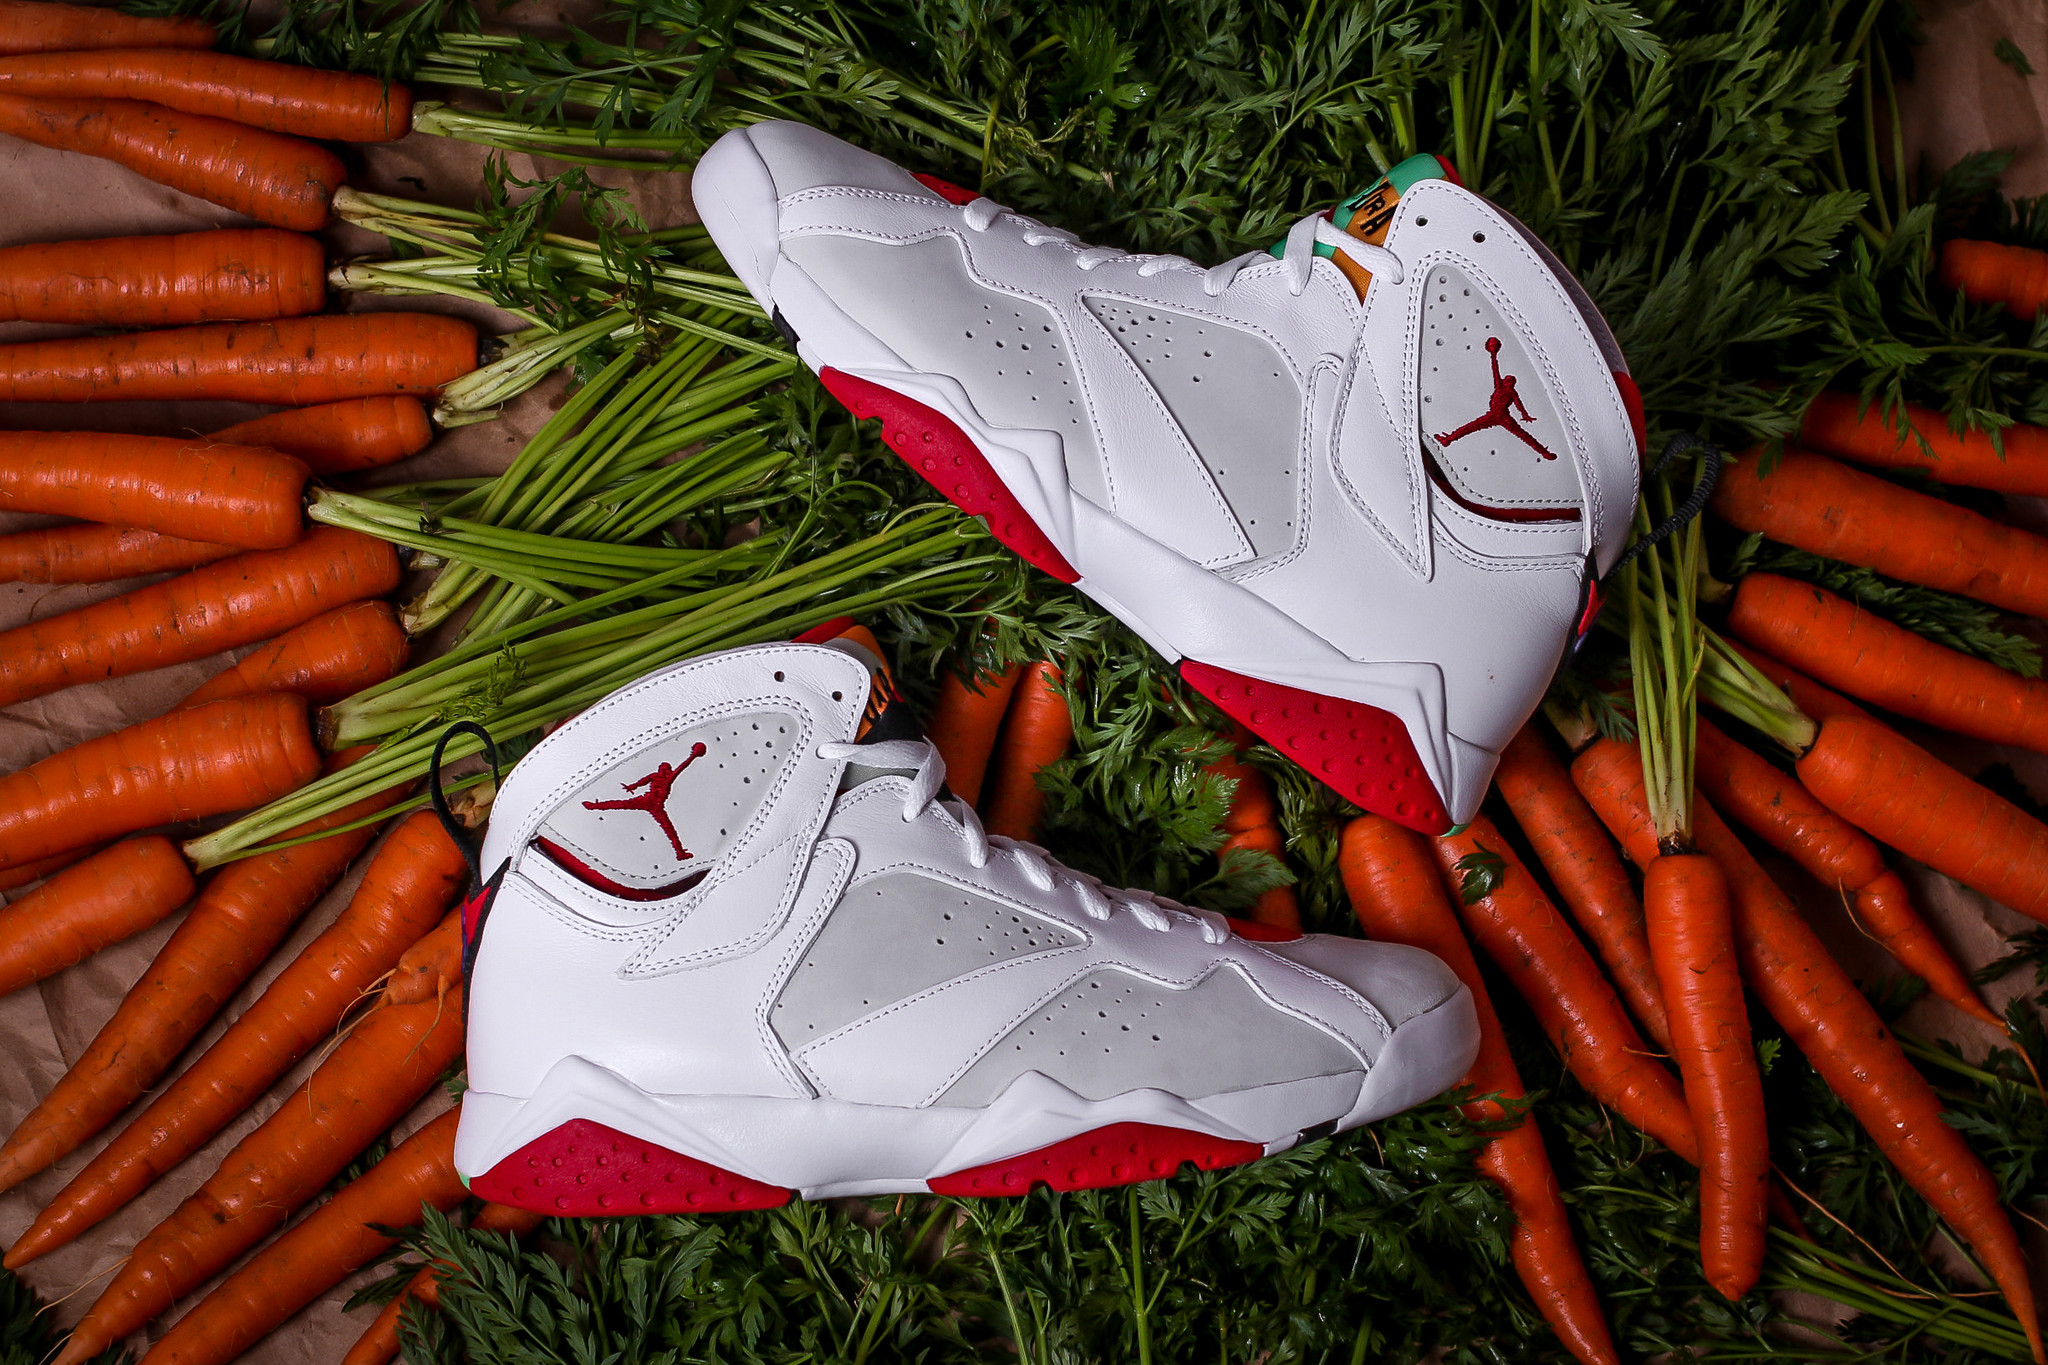 cbab6d7ed401b0 Air Jordan 7 (VII) Retro Color  White Light Silver-True Red Style   304775-125. Release  05 16 2015. Price   190.00